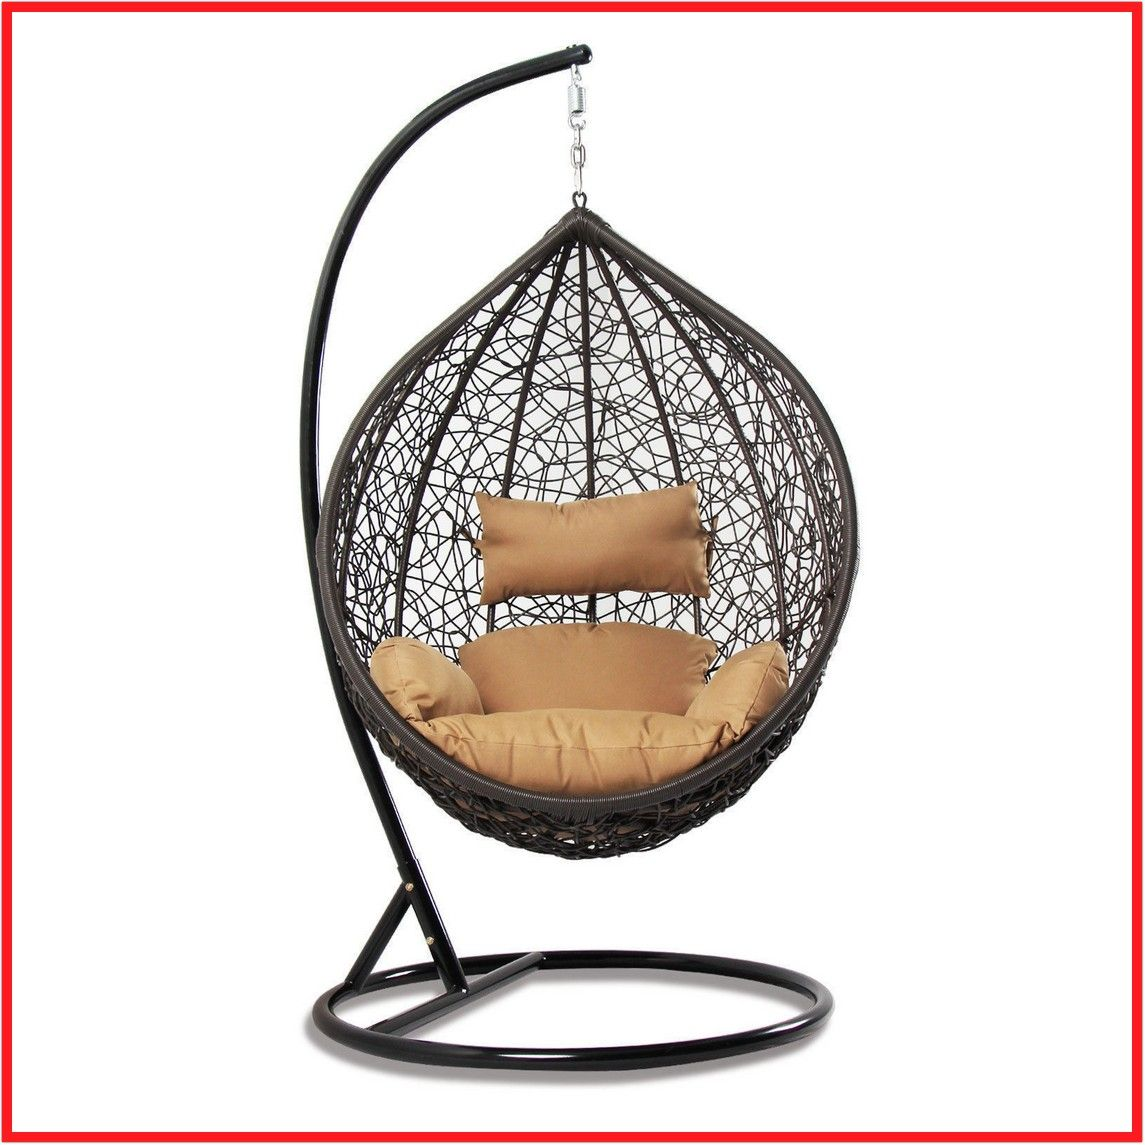 Pin on hanging chair resin wicker